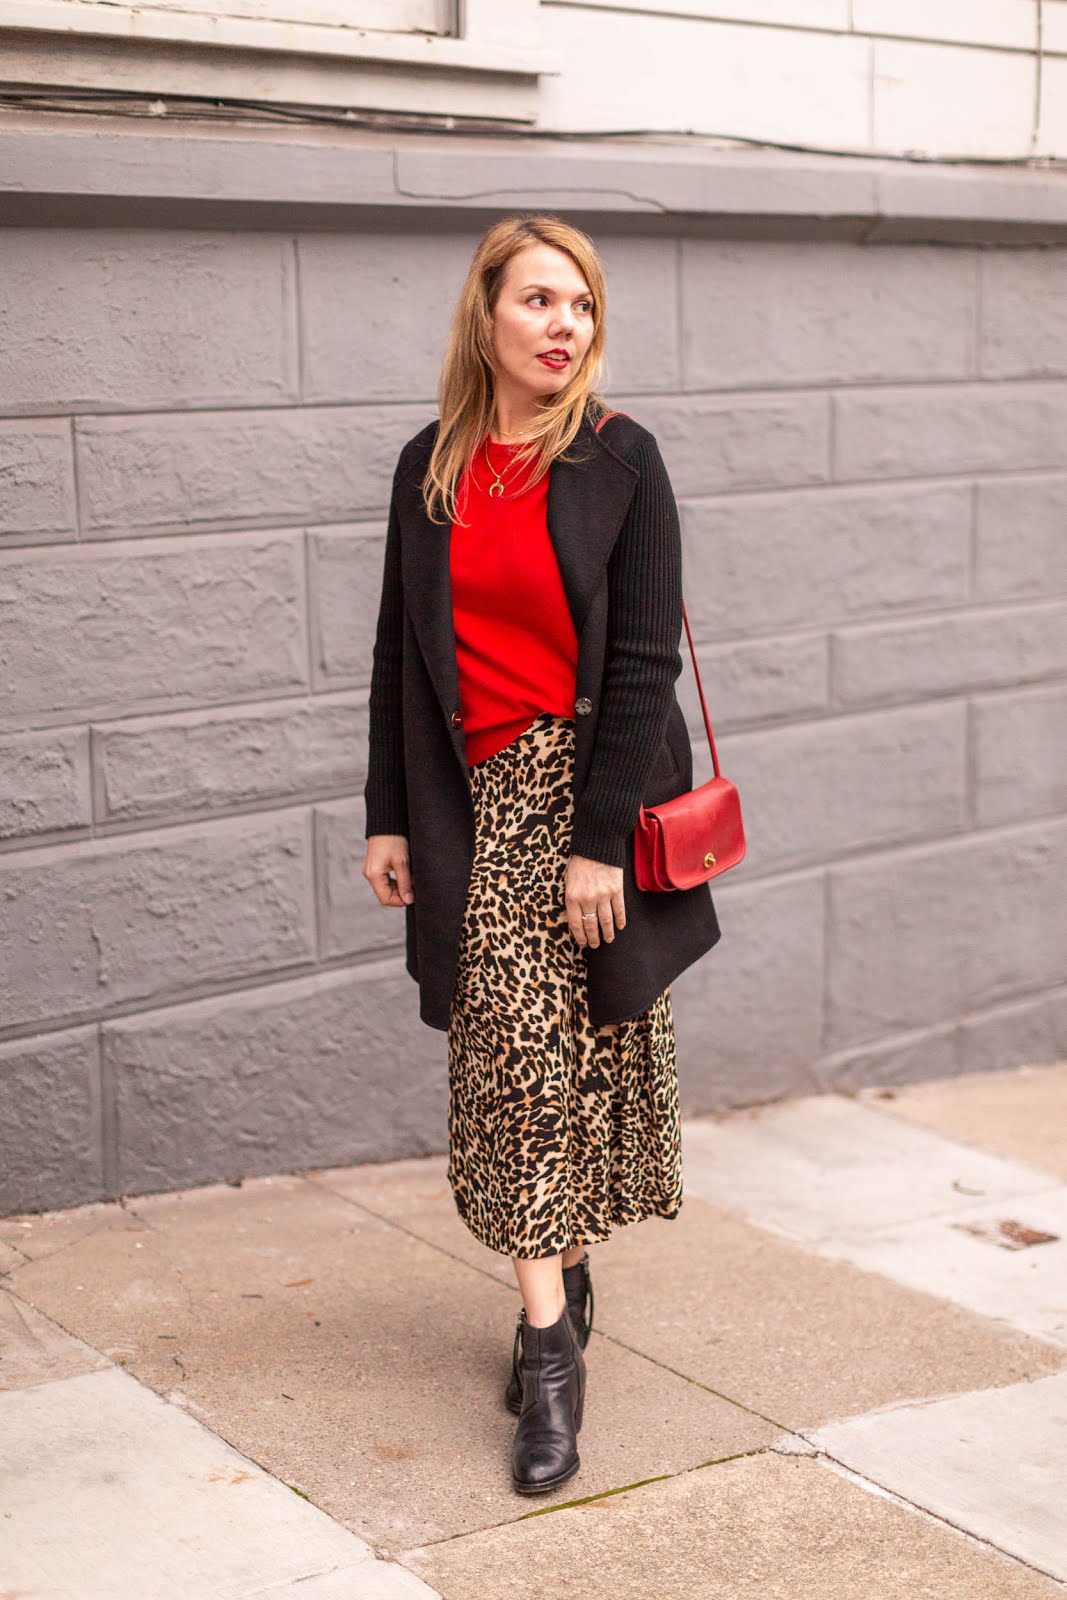 813cbb4dc I have come to a conclusion, and that is that midi skirts are generally  more flattering on most people than maxi skirts. This is because with a midi,  ...